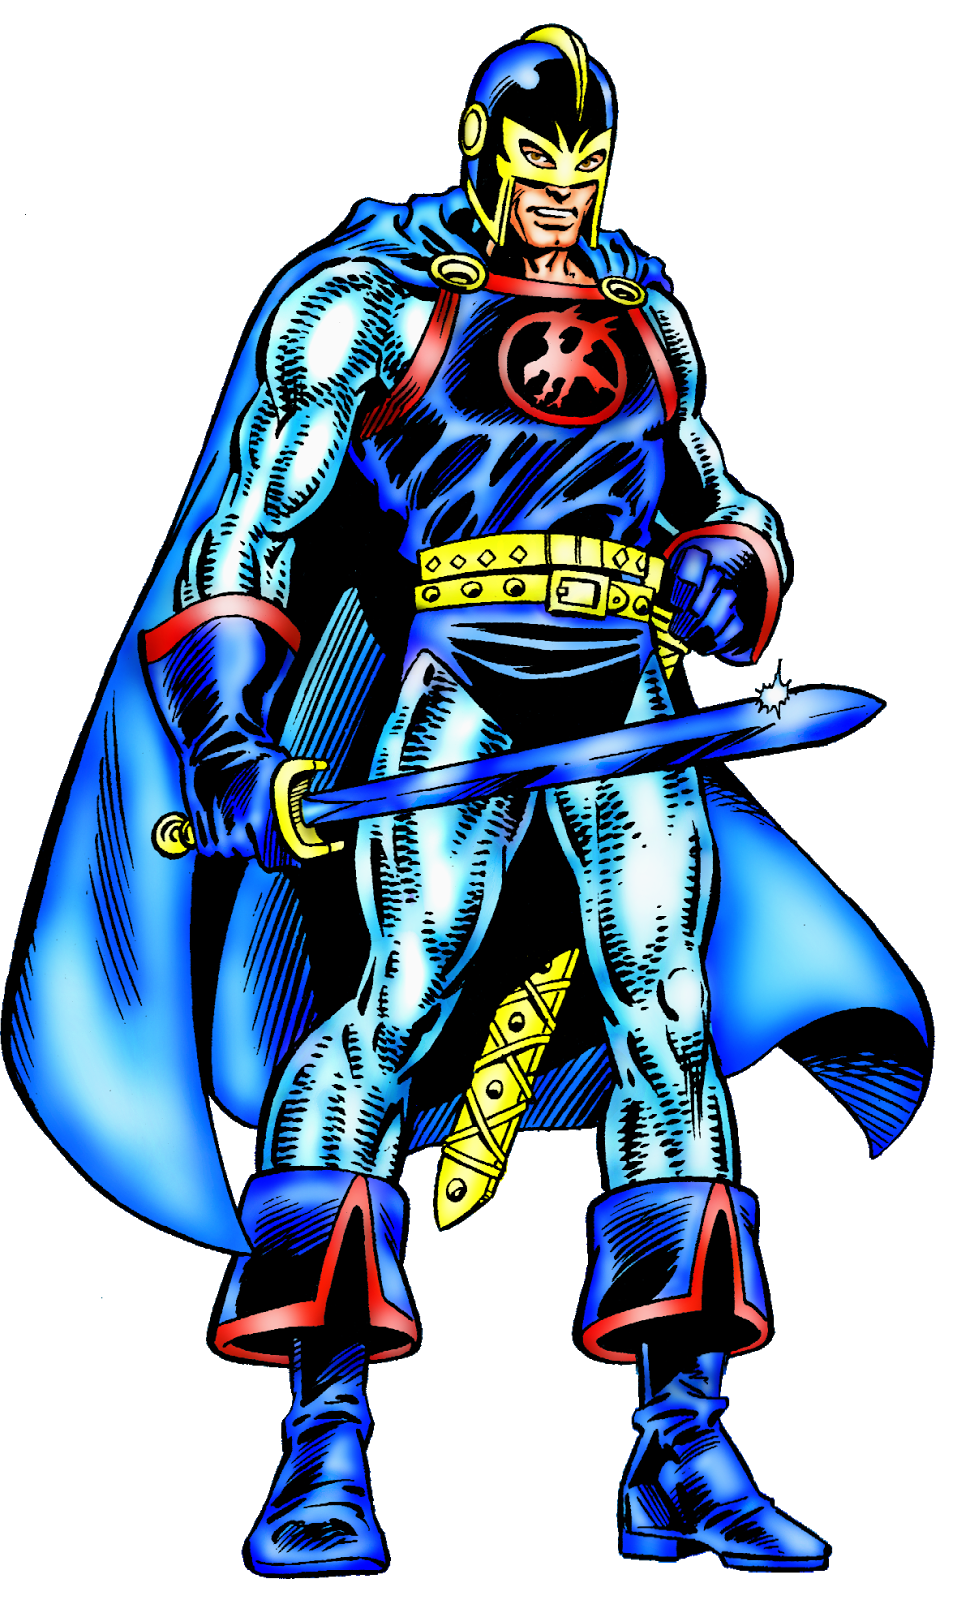 Black Knight III: Avengers & Heroes for Hire Black Knight Avengers